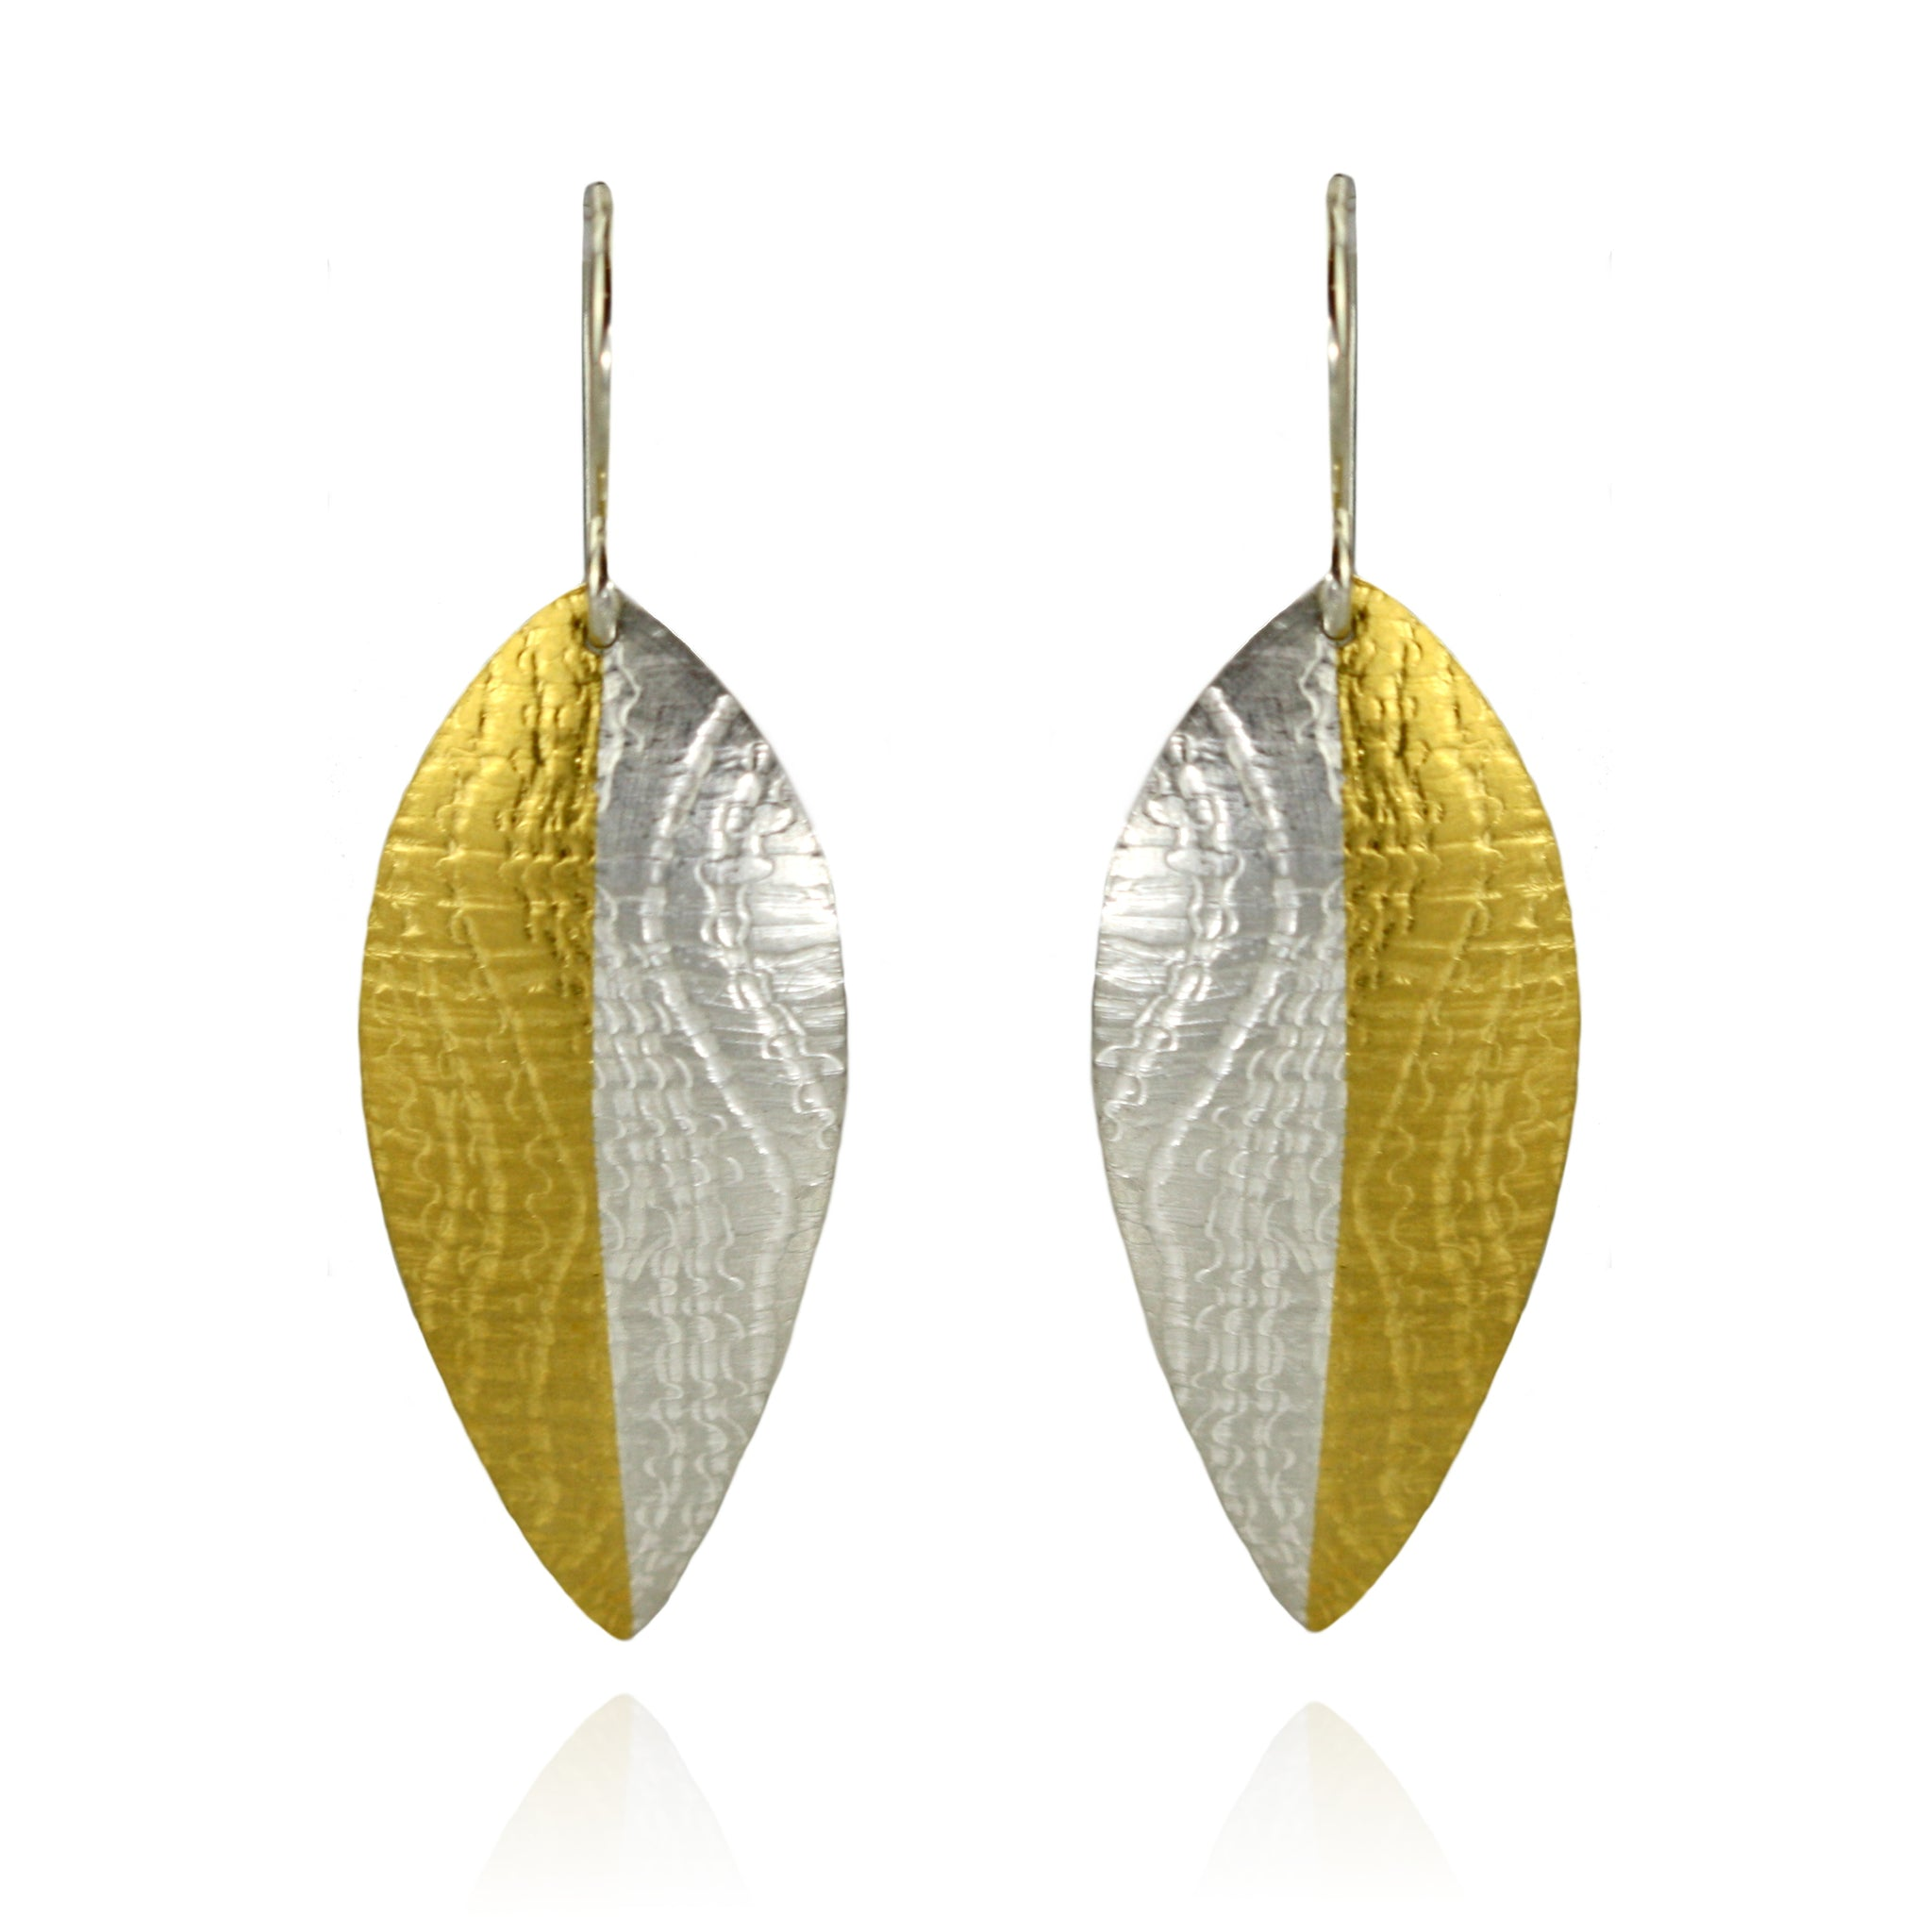 Silver and Gold Leaf Earrings